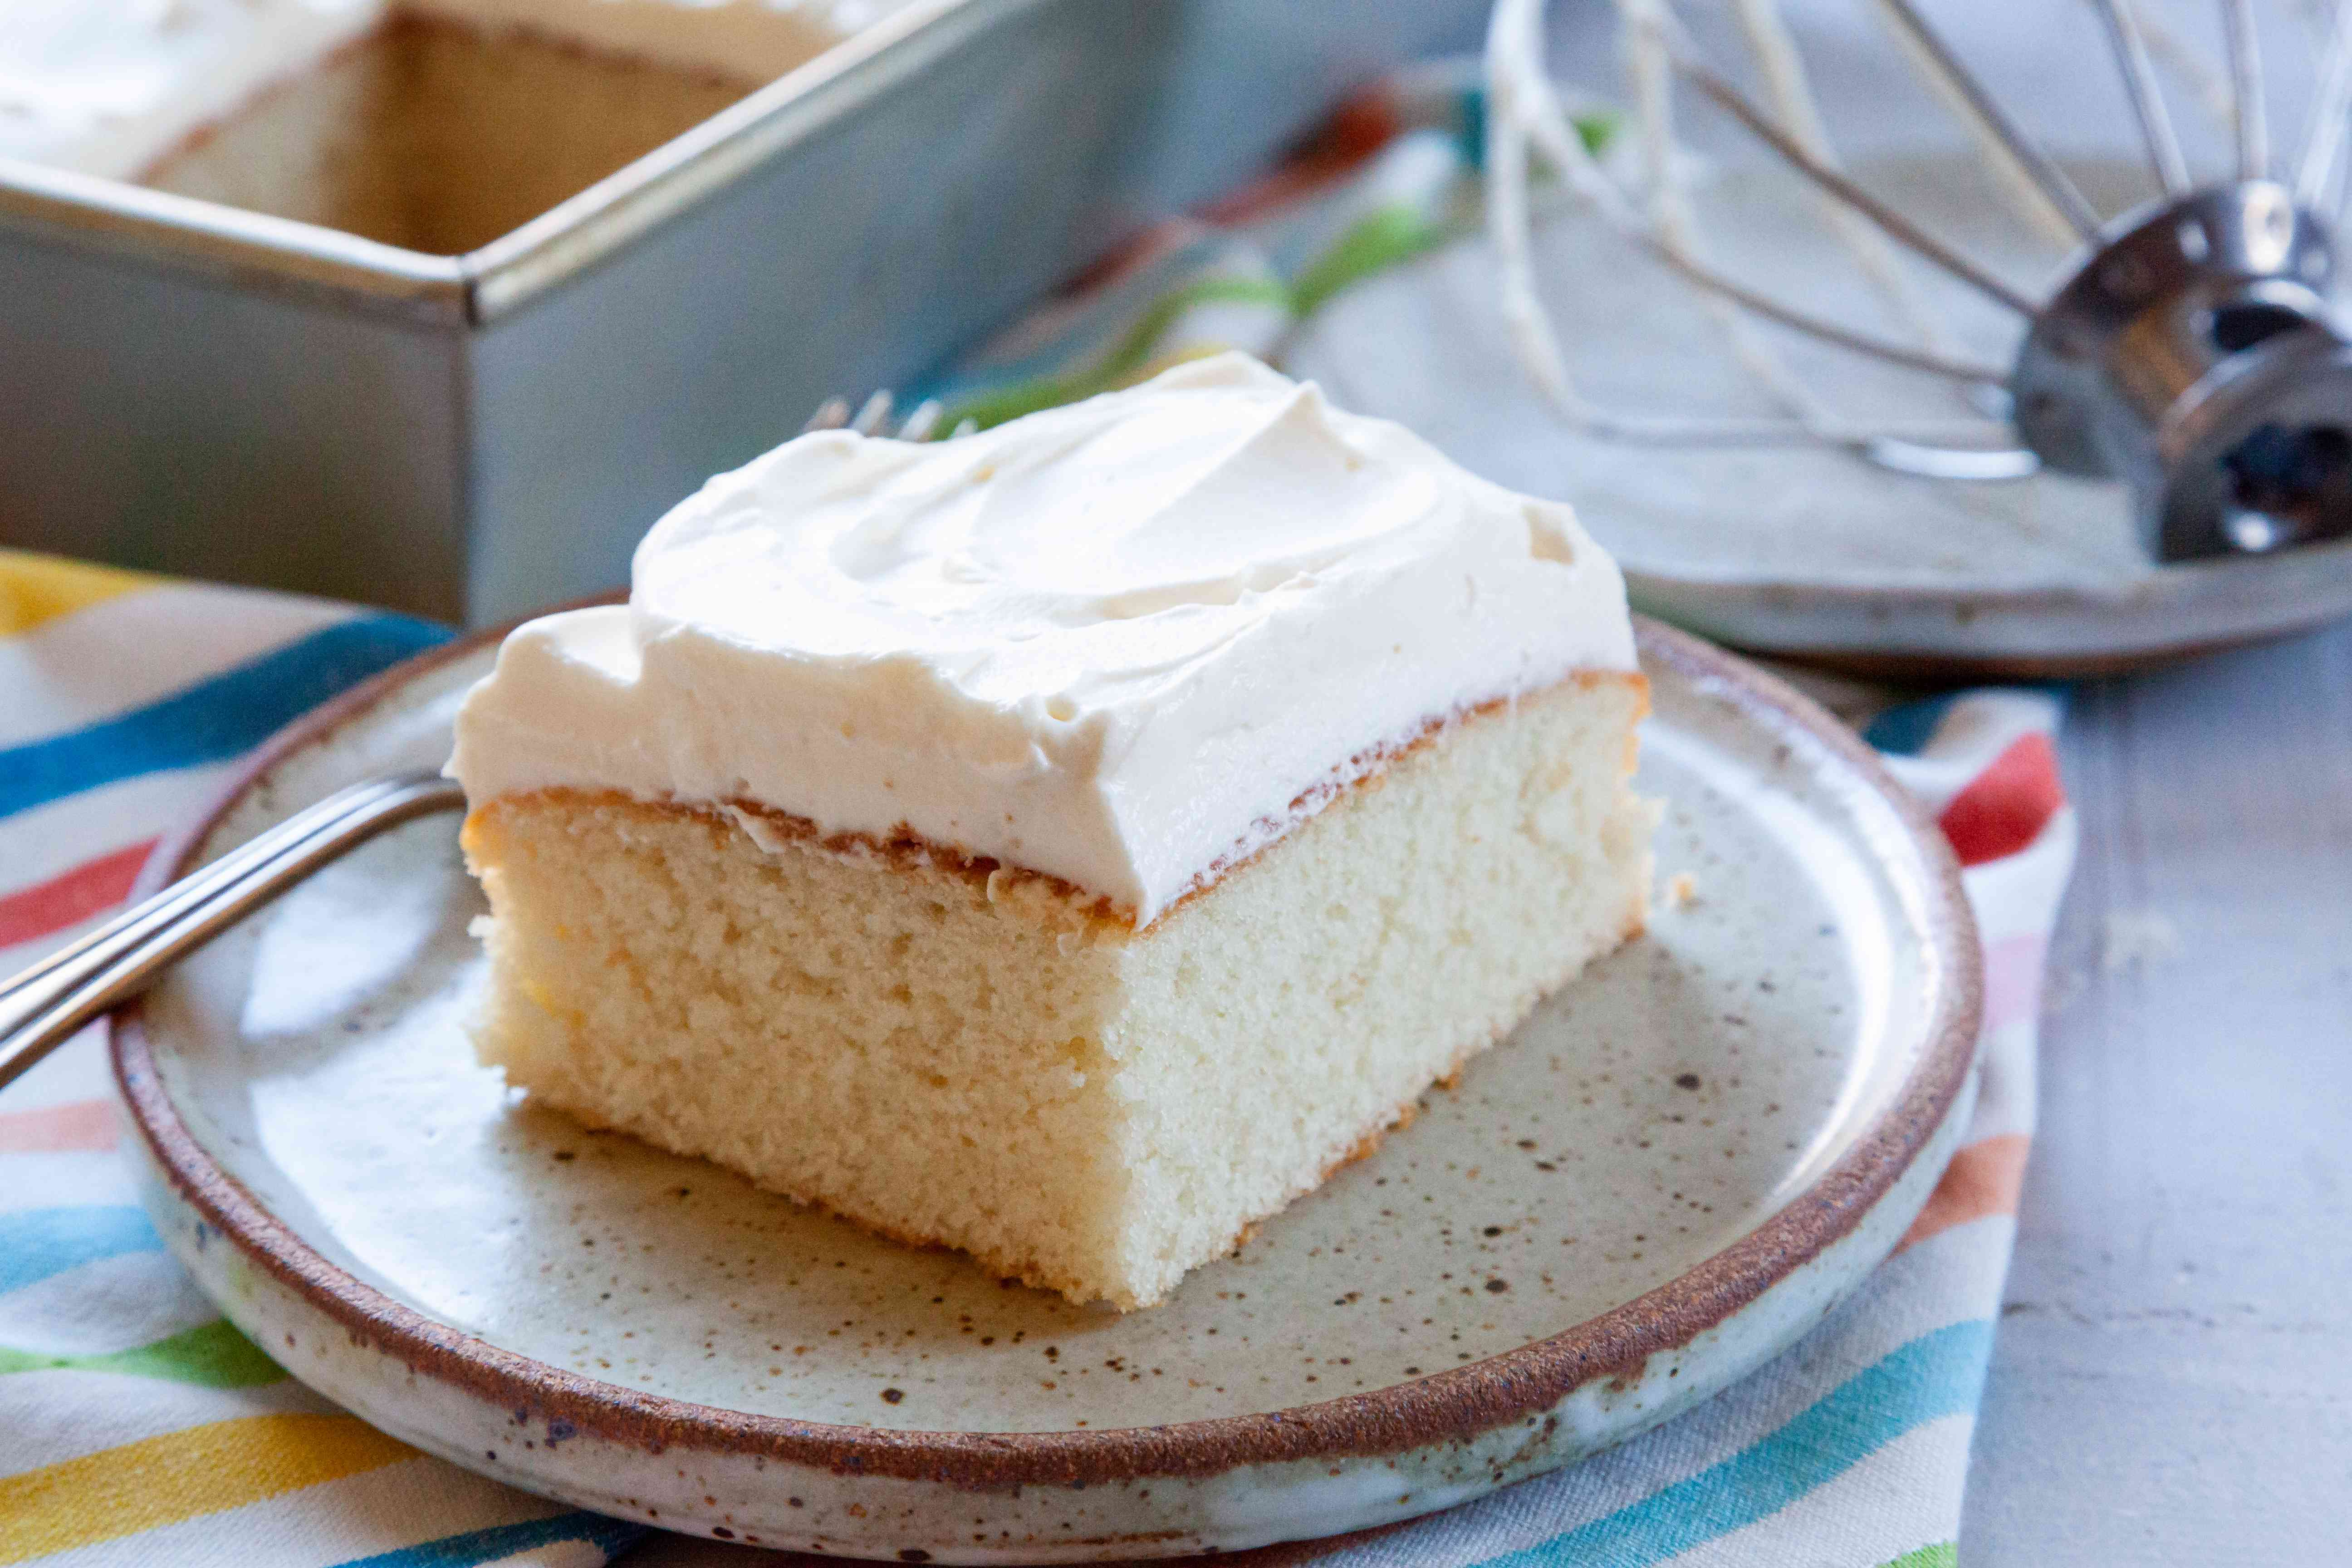 Easy white cake topped with frosting and on a plate.